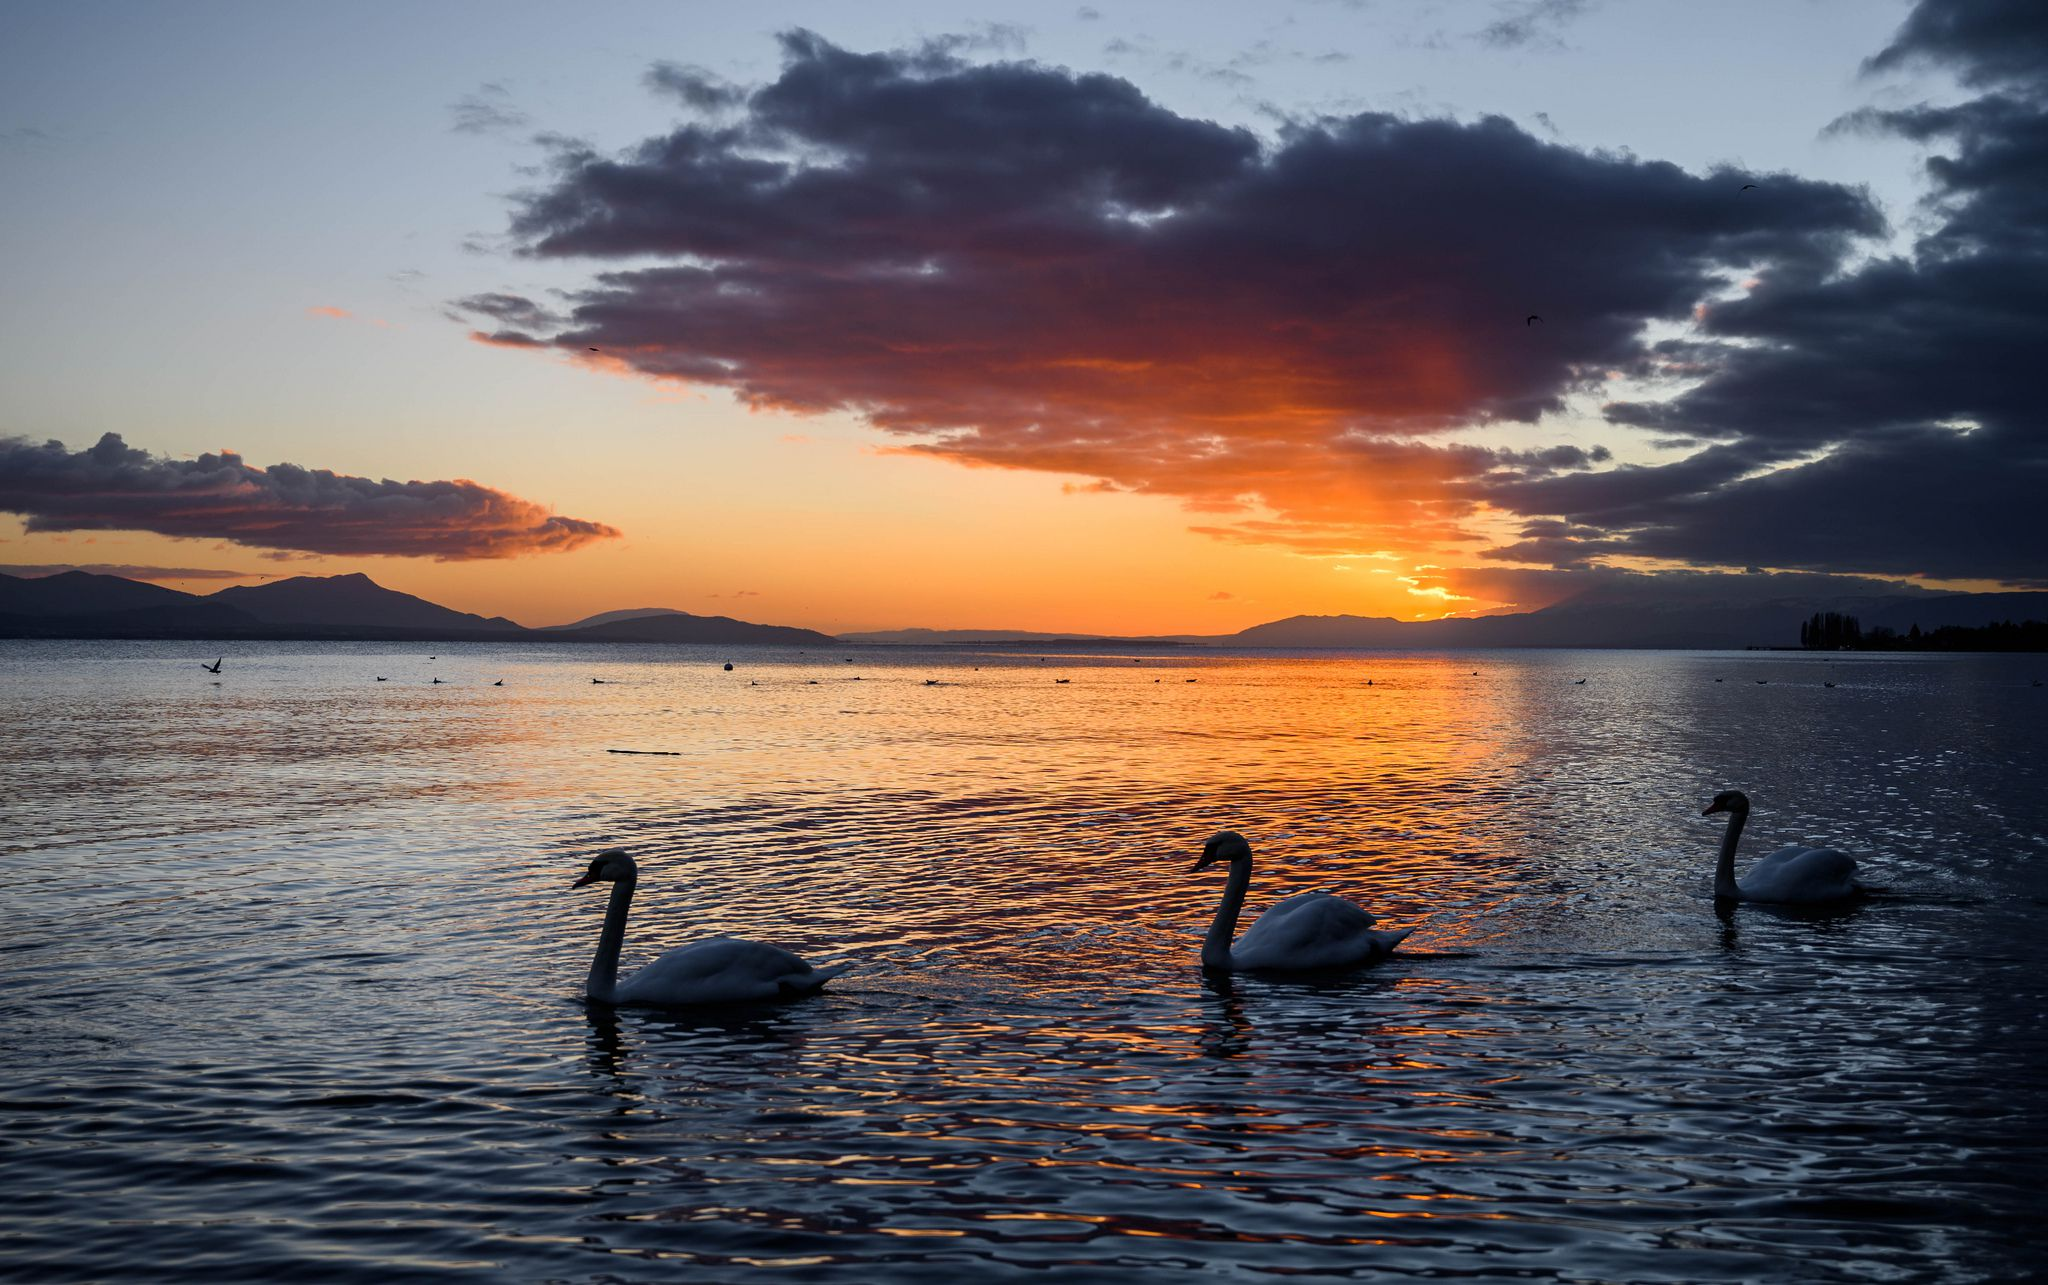 3 swans in the lake